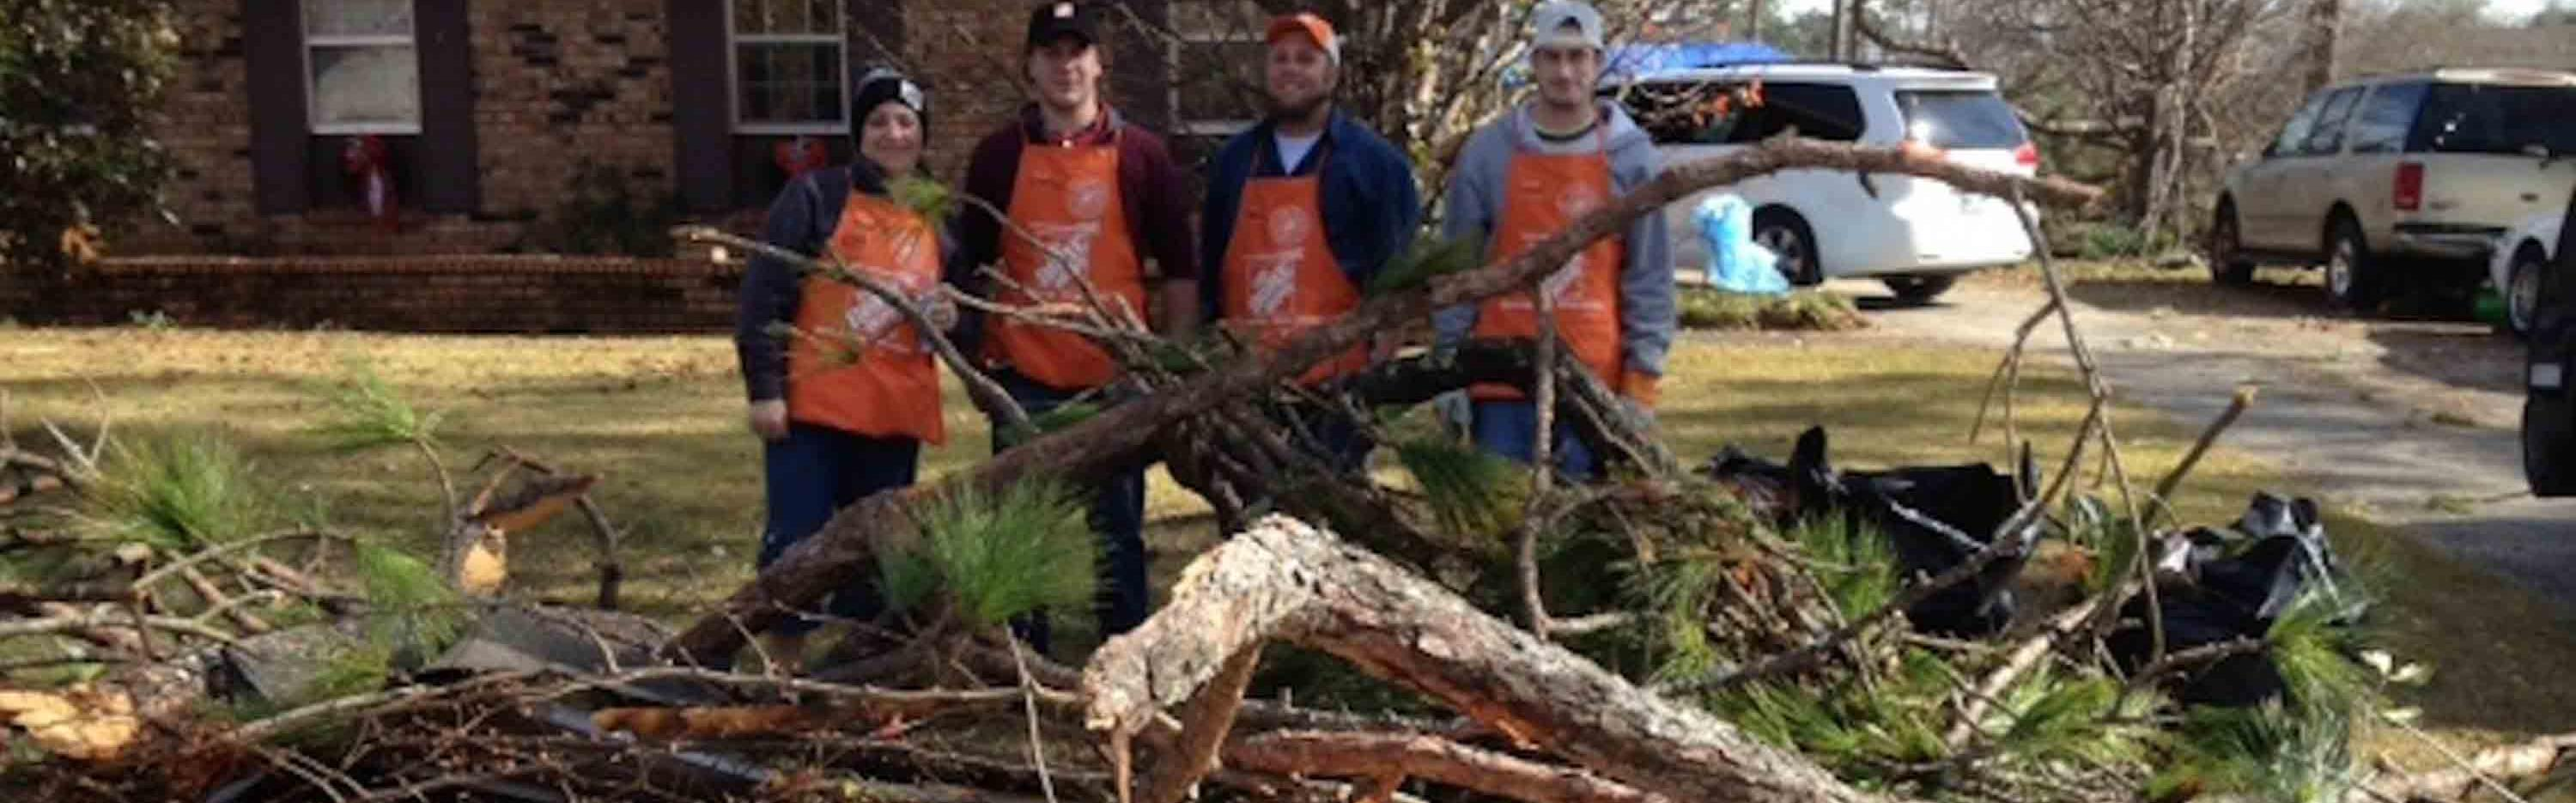 team depot christmas - Is Home Depot Open On Christmas Eve